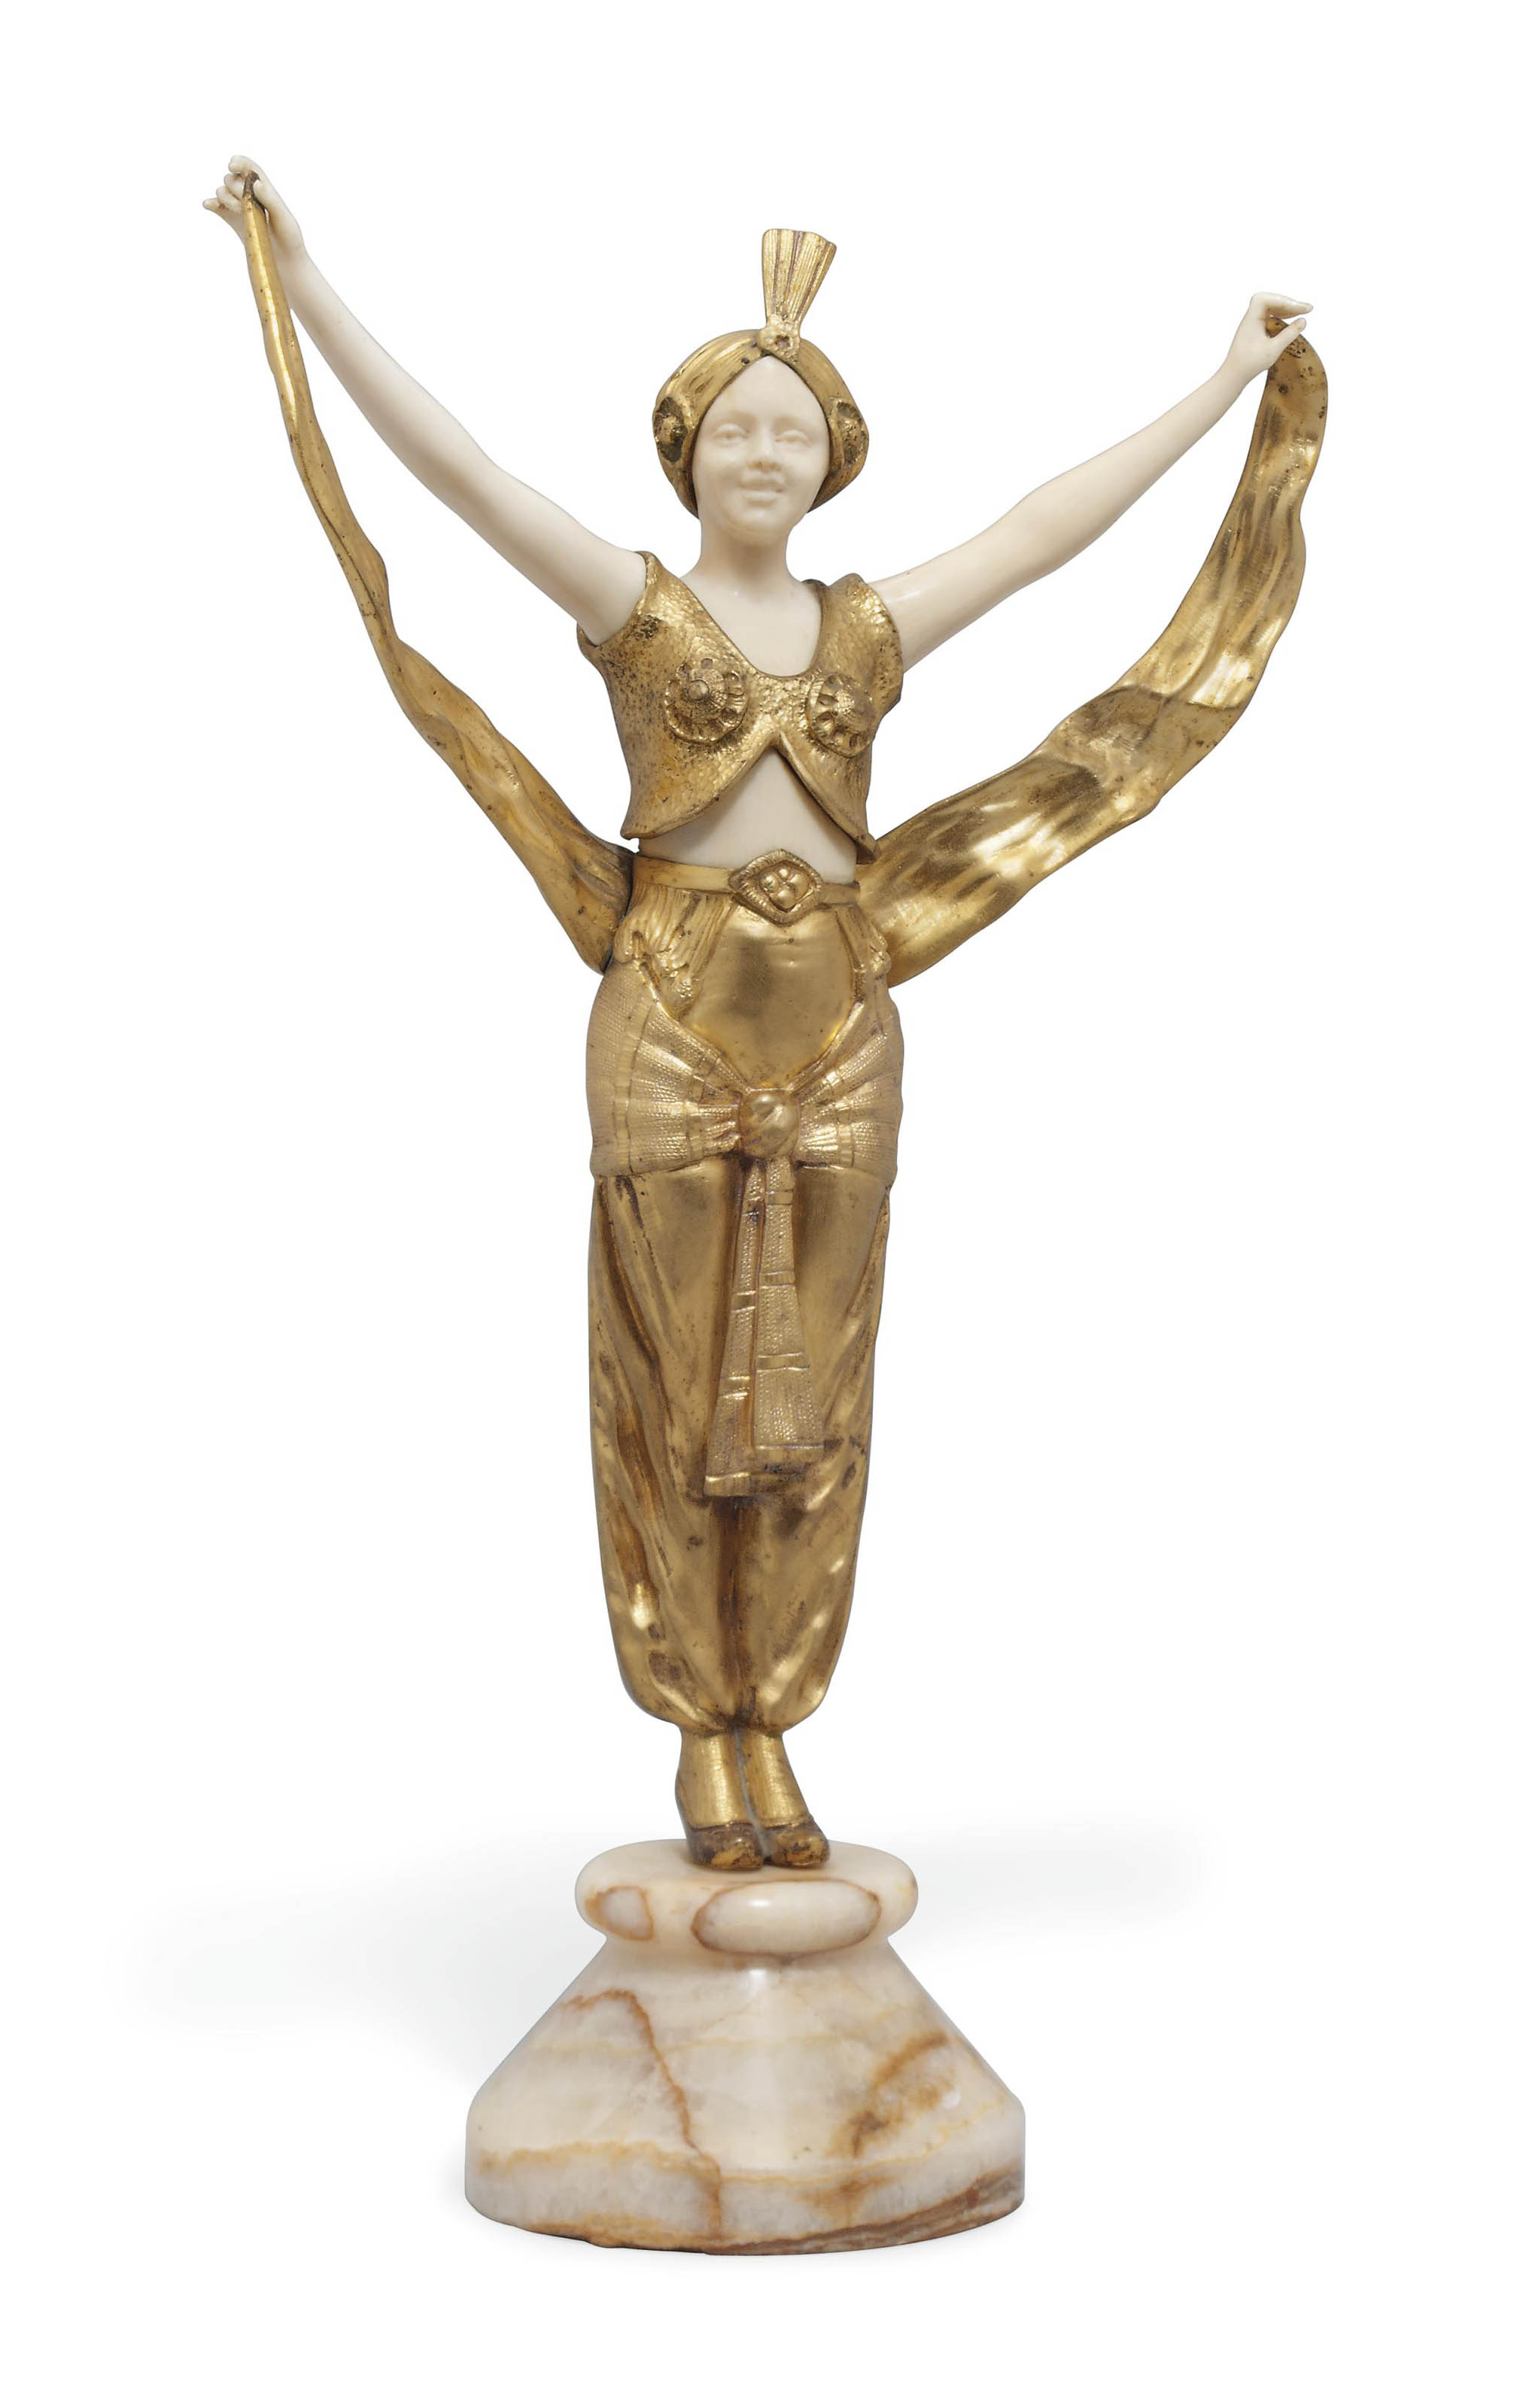 A FRENCH GILT-BRONZE AND IVORY MODEL OF A MOORISH DANCER